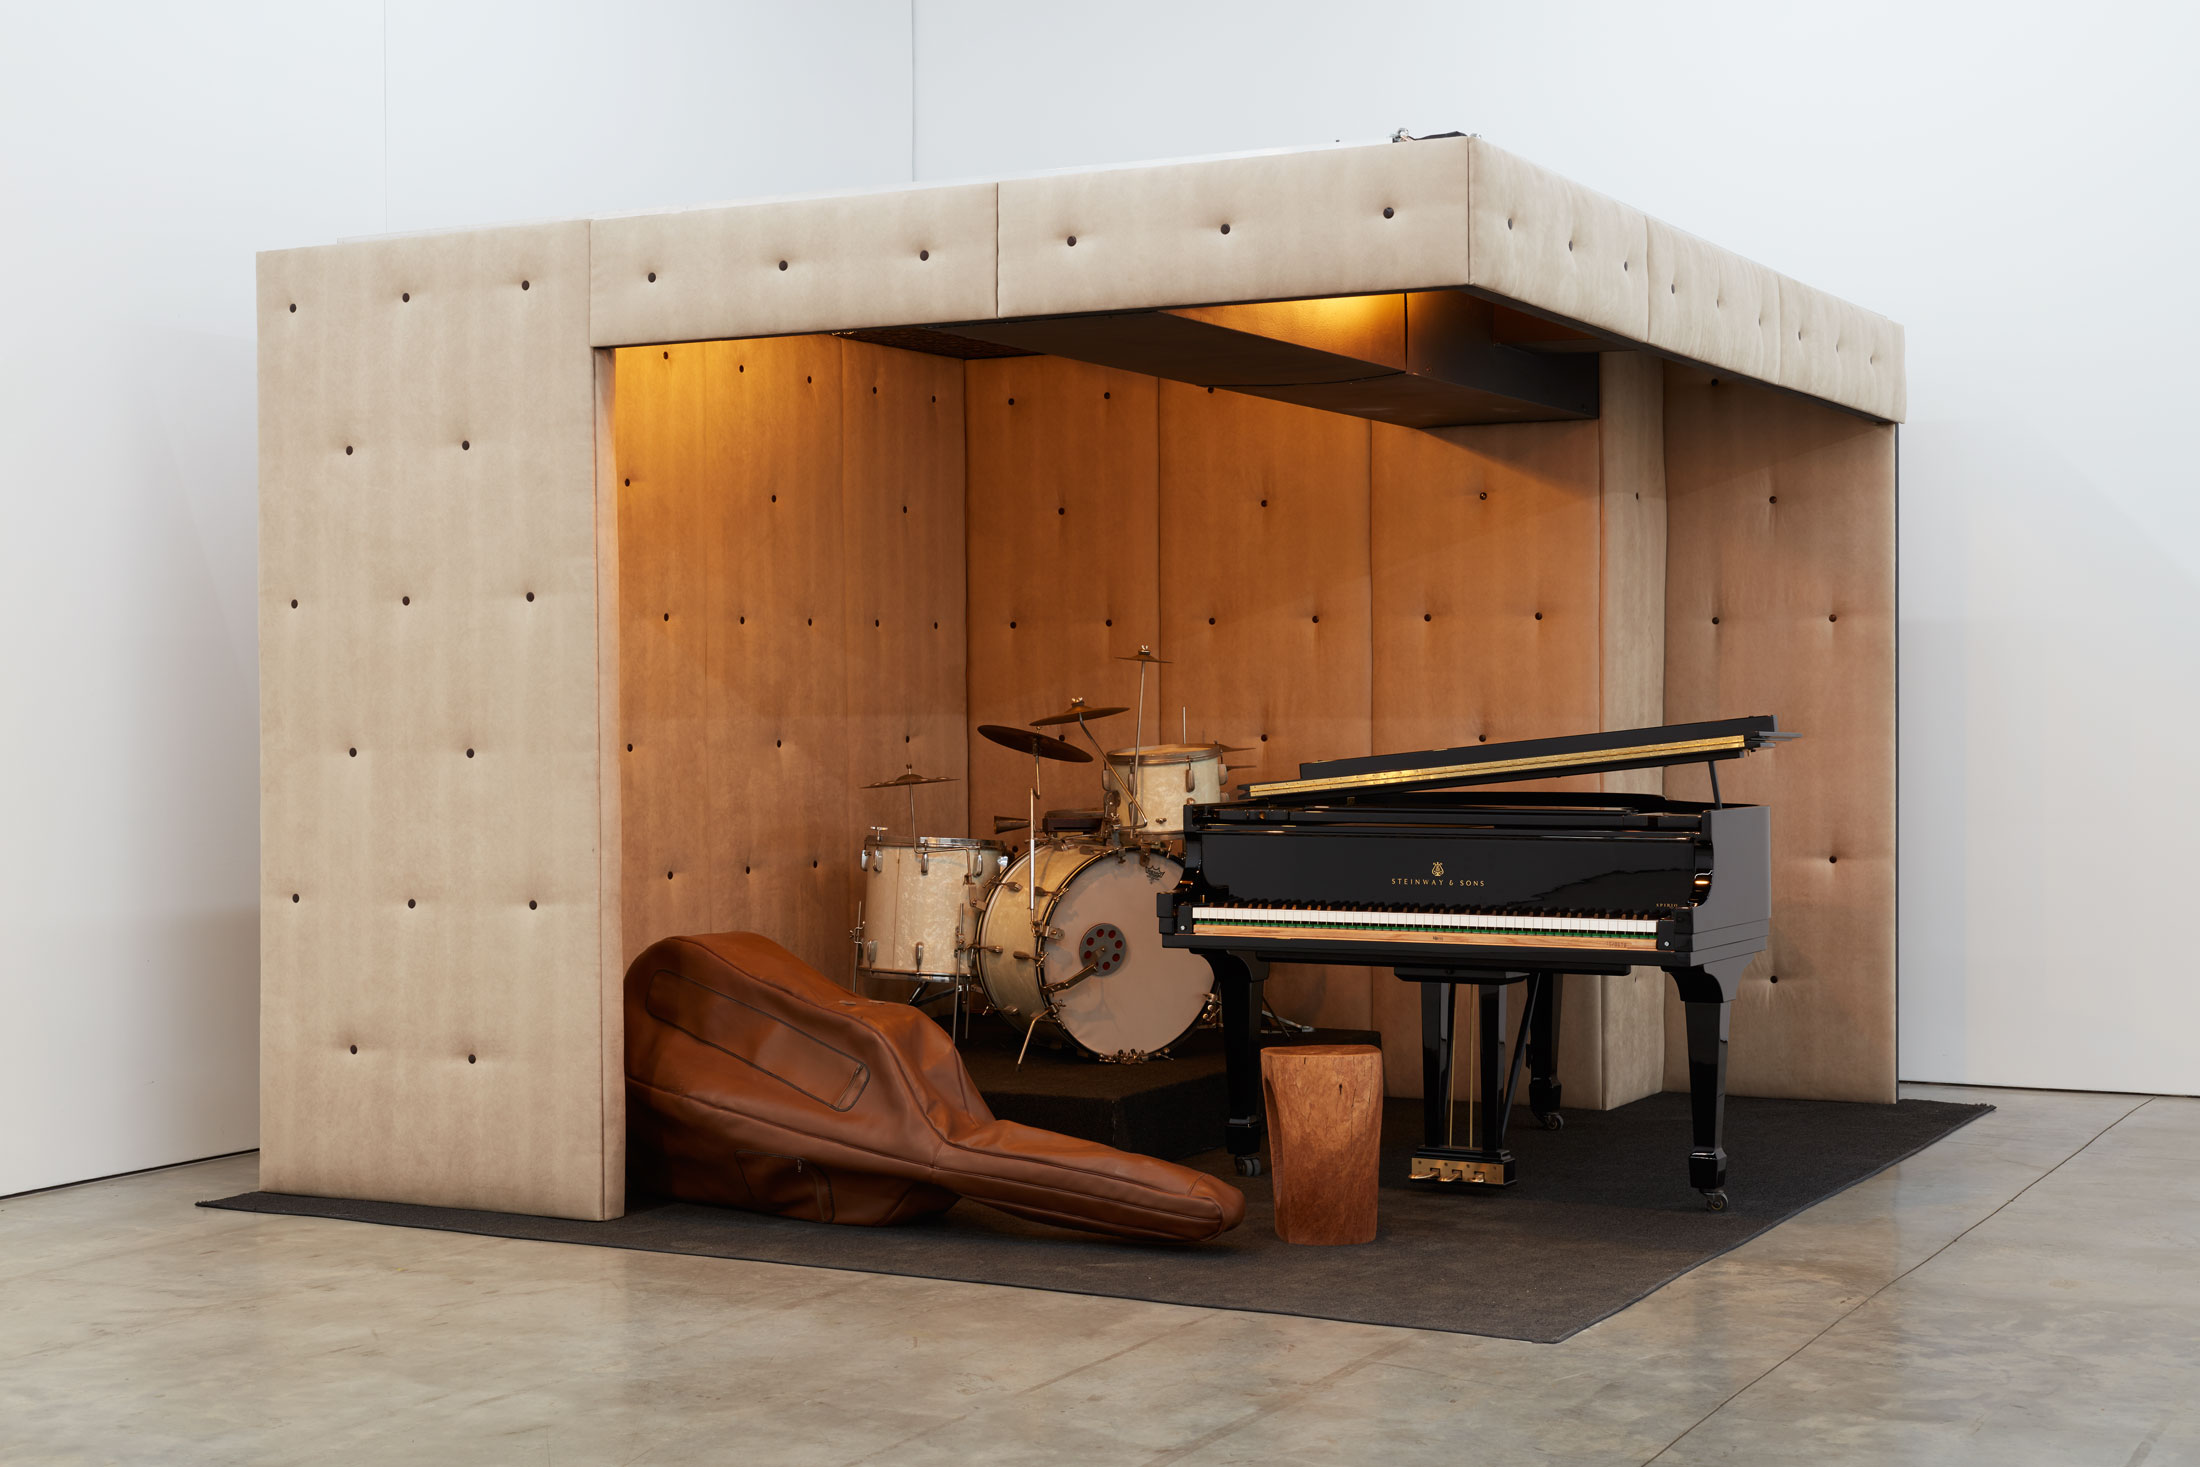 Jason Moran, STAGED,Three Deuces , 2015,Mixed media, sound,120 x 216 x 120 inches (304.8 x 548.6 x 304.8 cm).© Jason Moran; Courtesy of the artist and Luhring Augustine, New York.